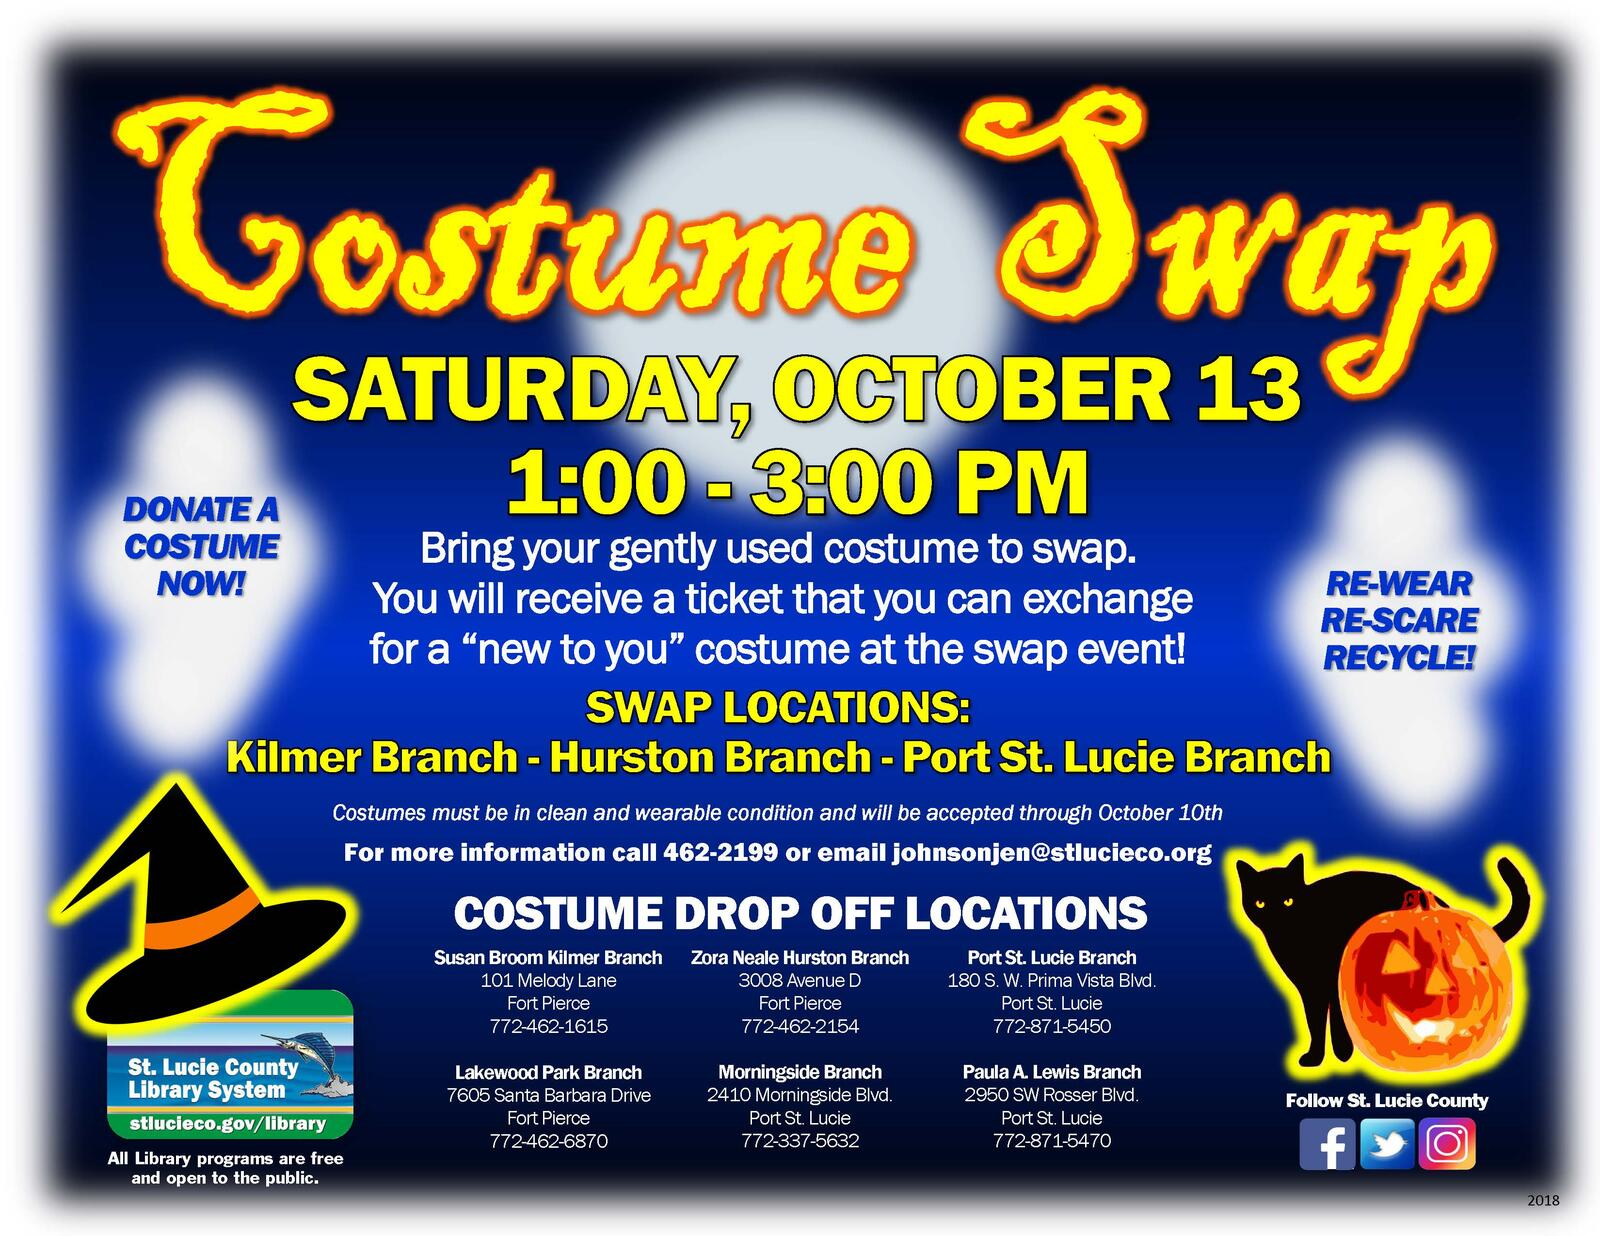 St  Lucie County Libraries Host Halloween Costume Swap Oct  13 (St